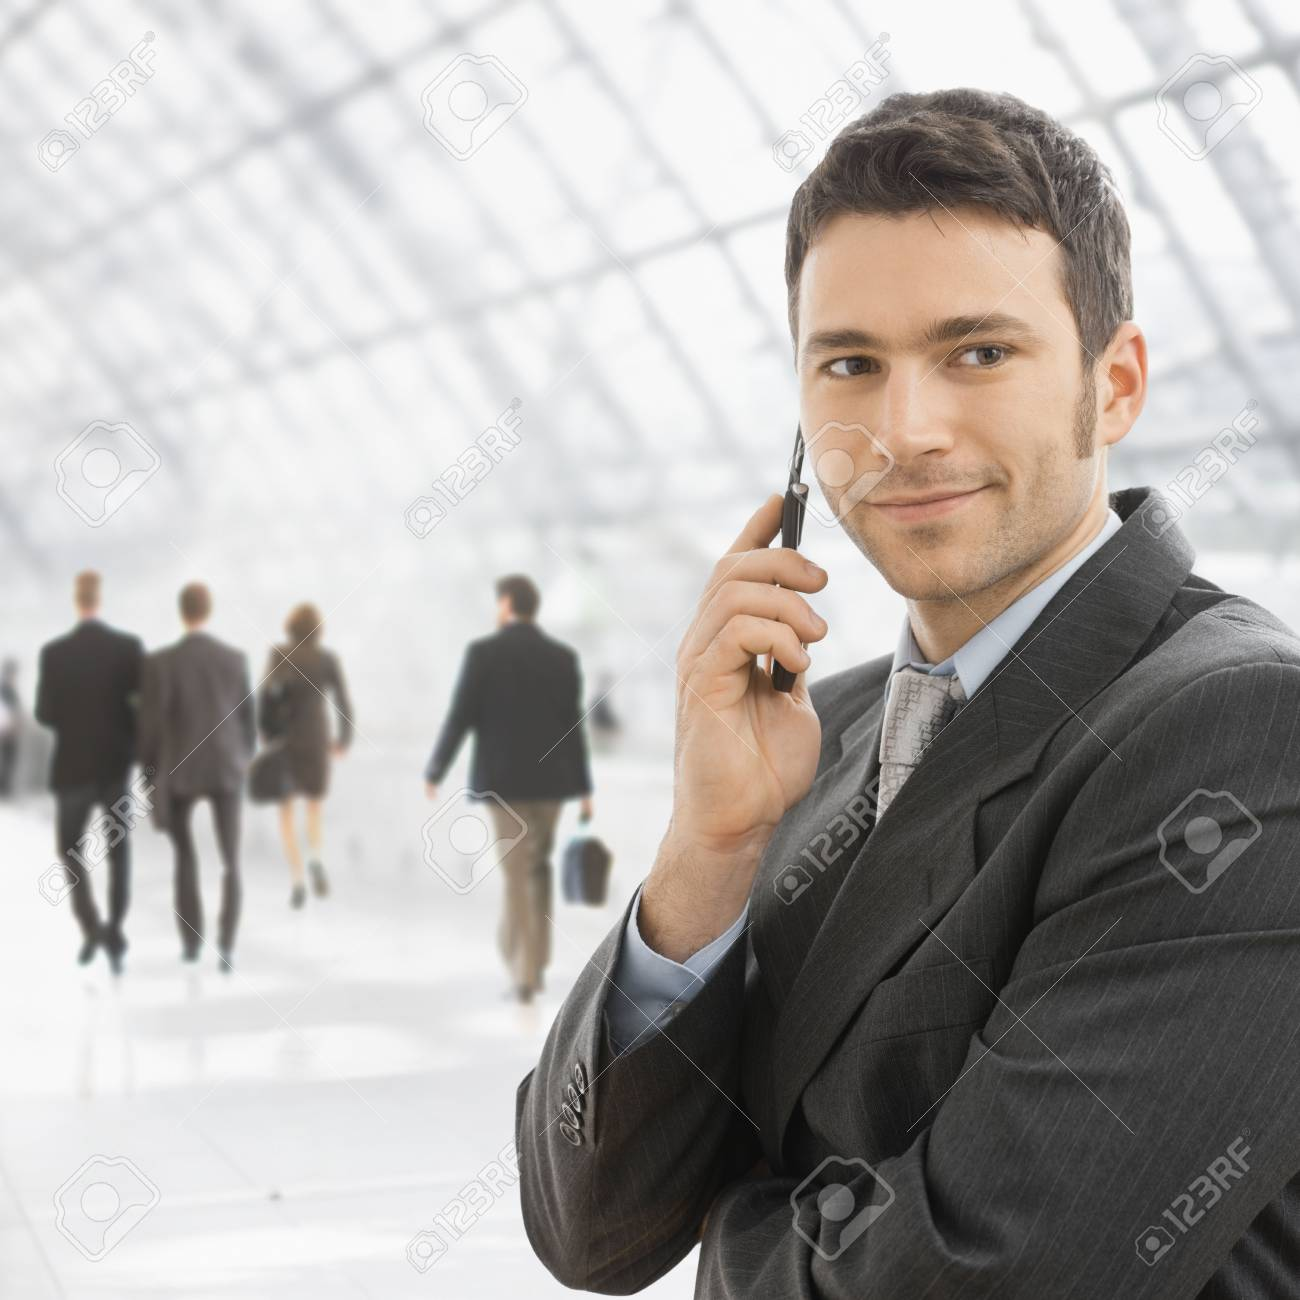 Closeup portrait of happy businessman talking on mobile in front of office building windows. Stock Photo - 6286136